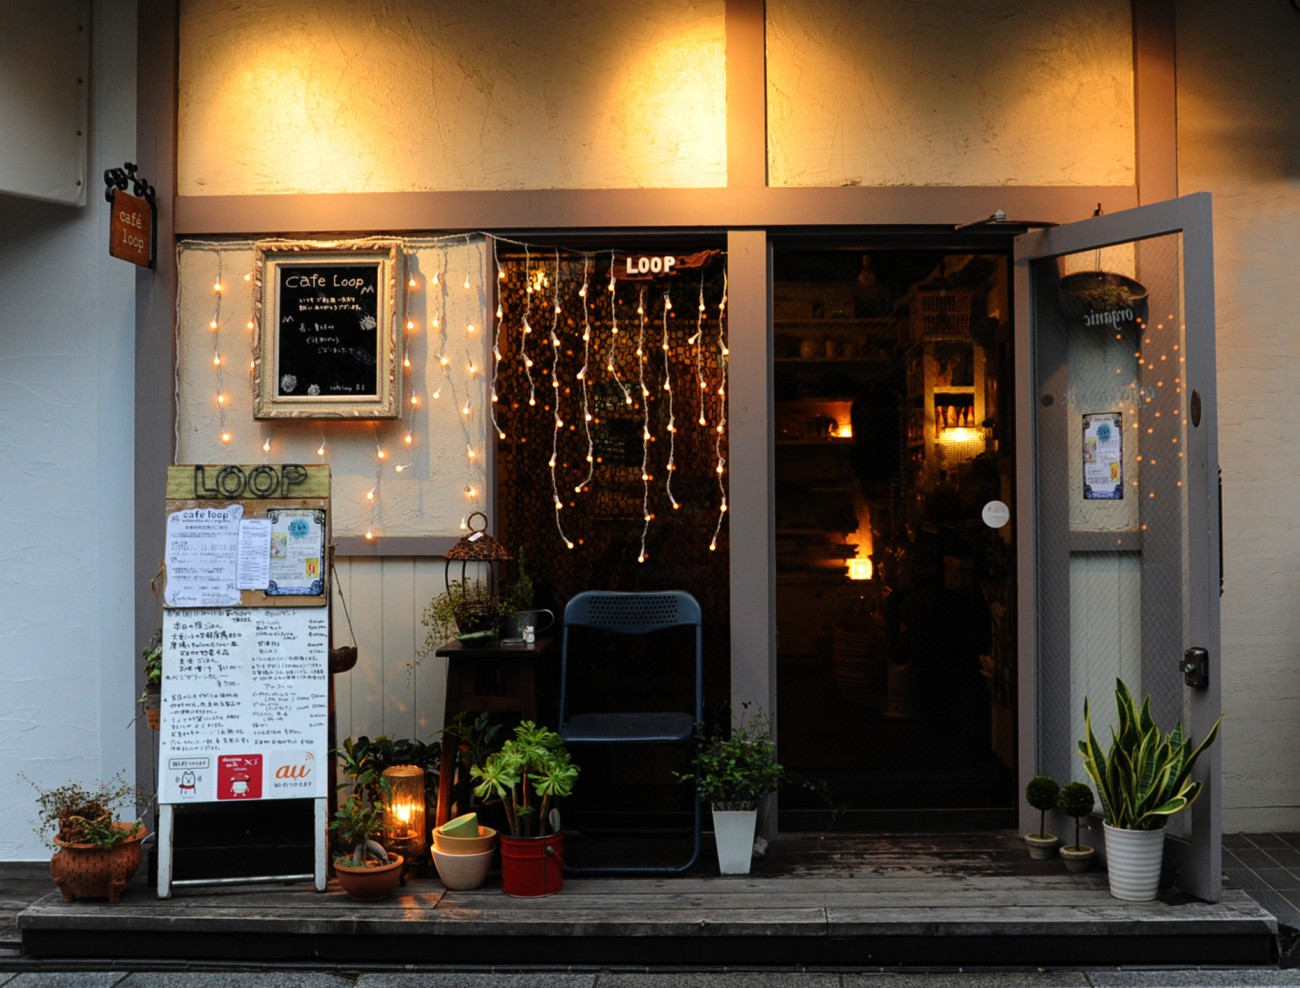 Cafe Loop in Musashikosugi has delicious gluten-free, vegan desserts with coffee and tea.